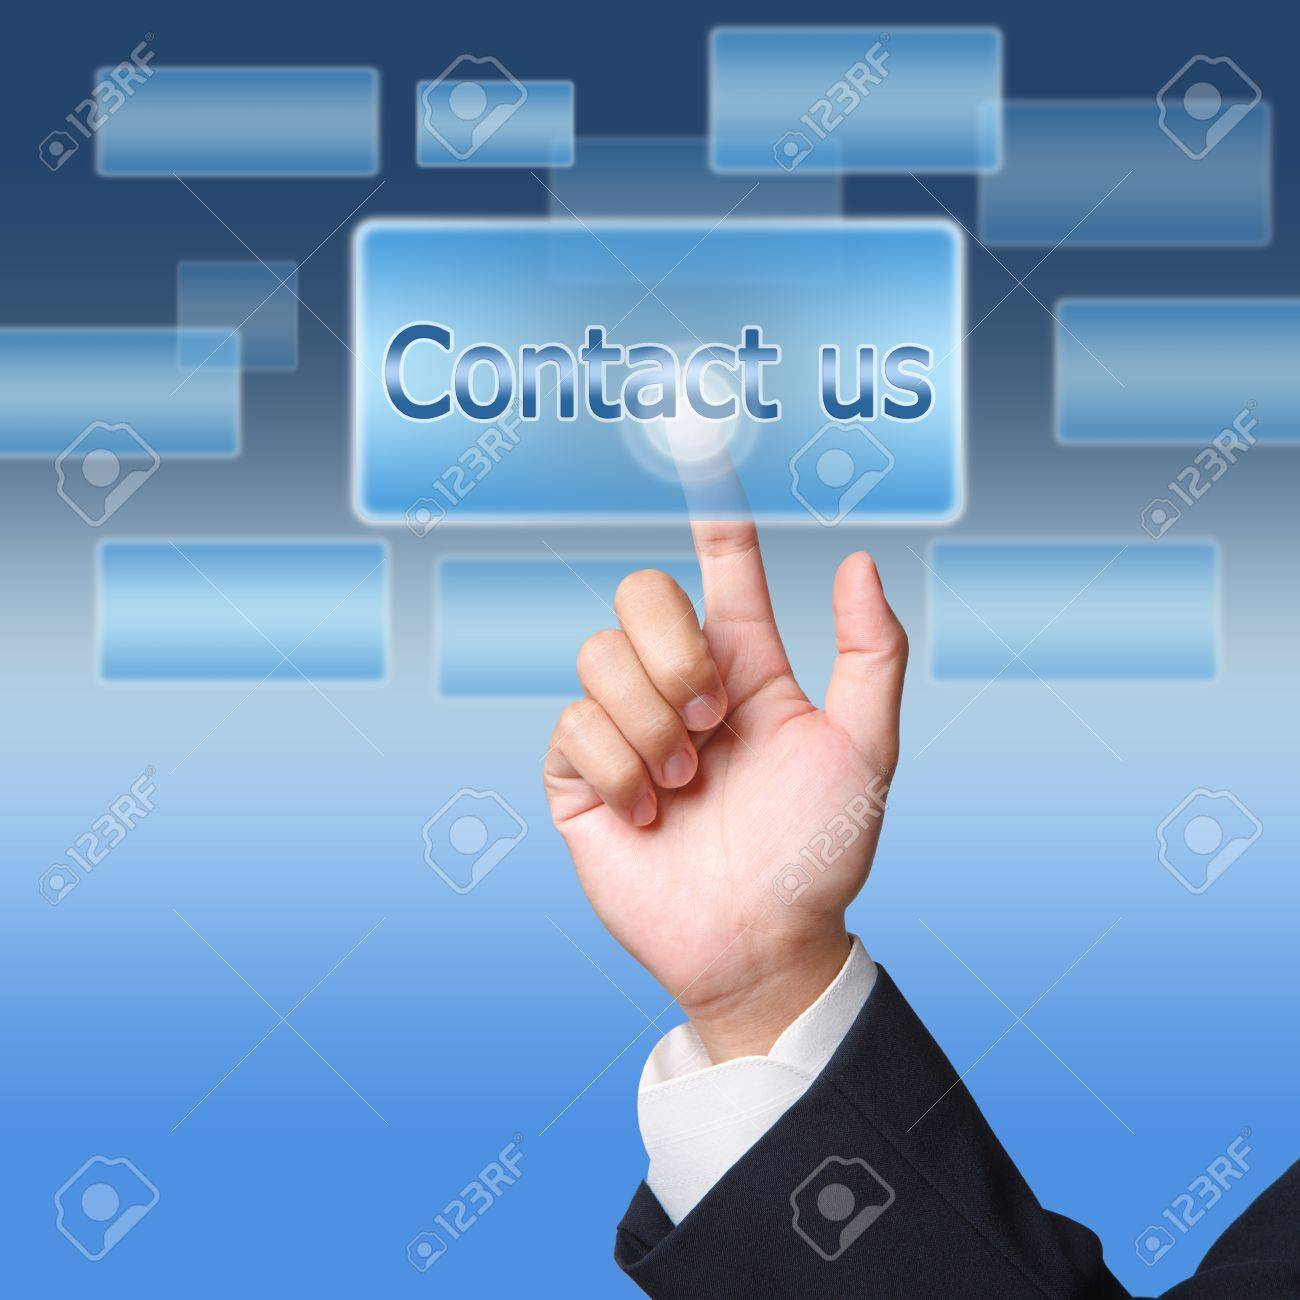 pushing contact us  button on a touch screen interface Stock Photo - 12659834